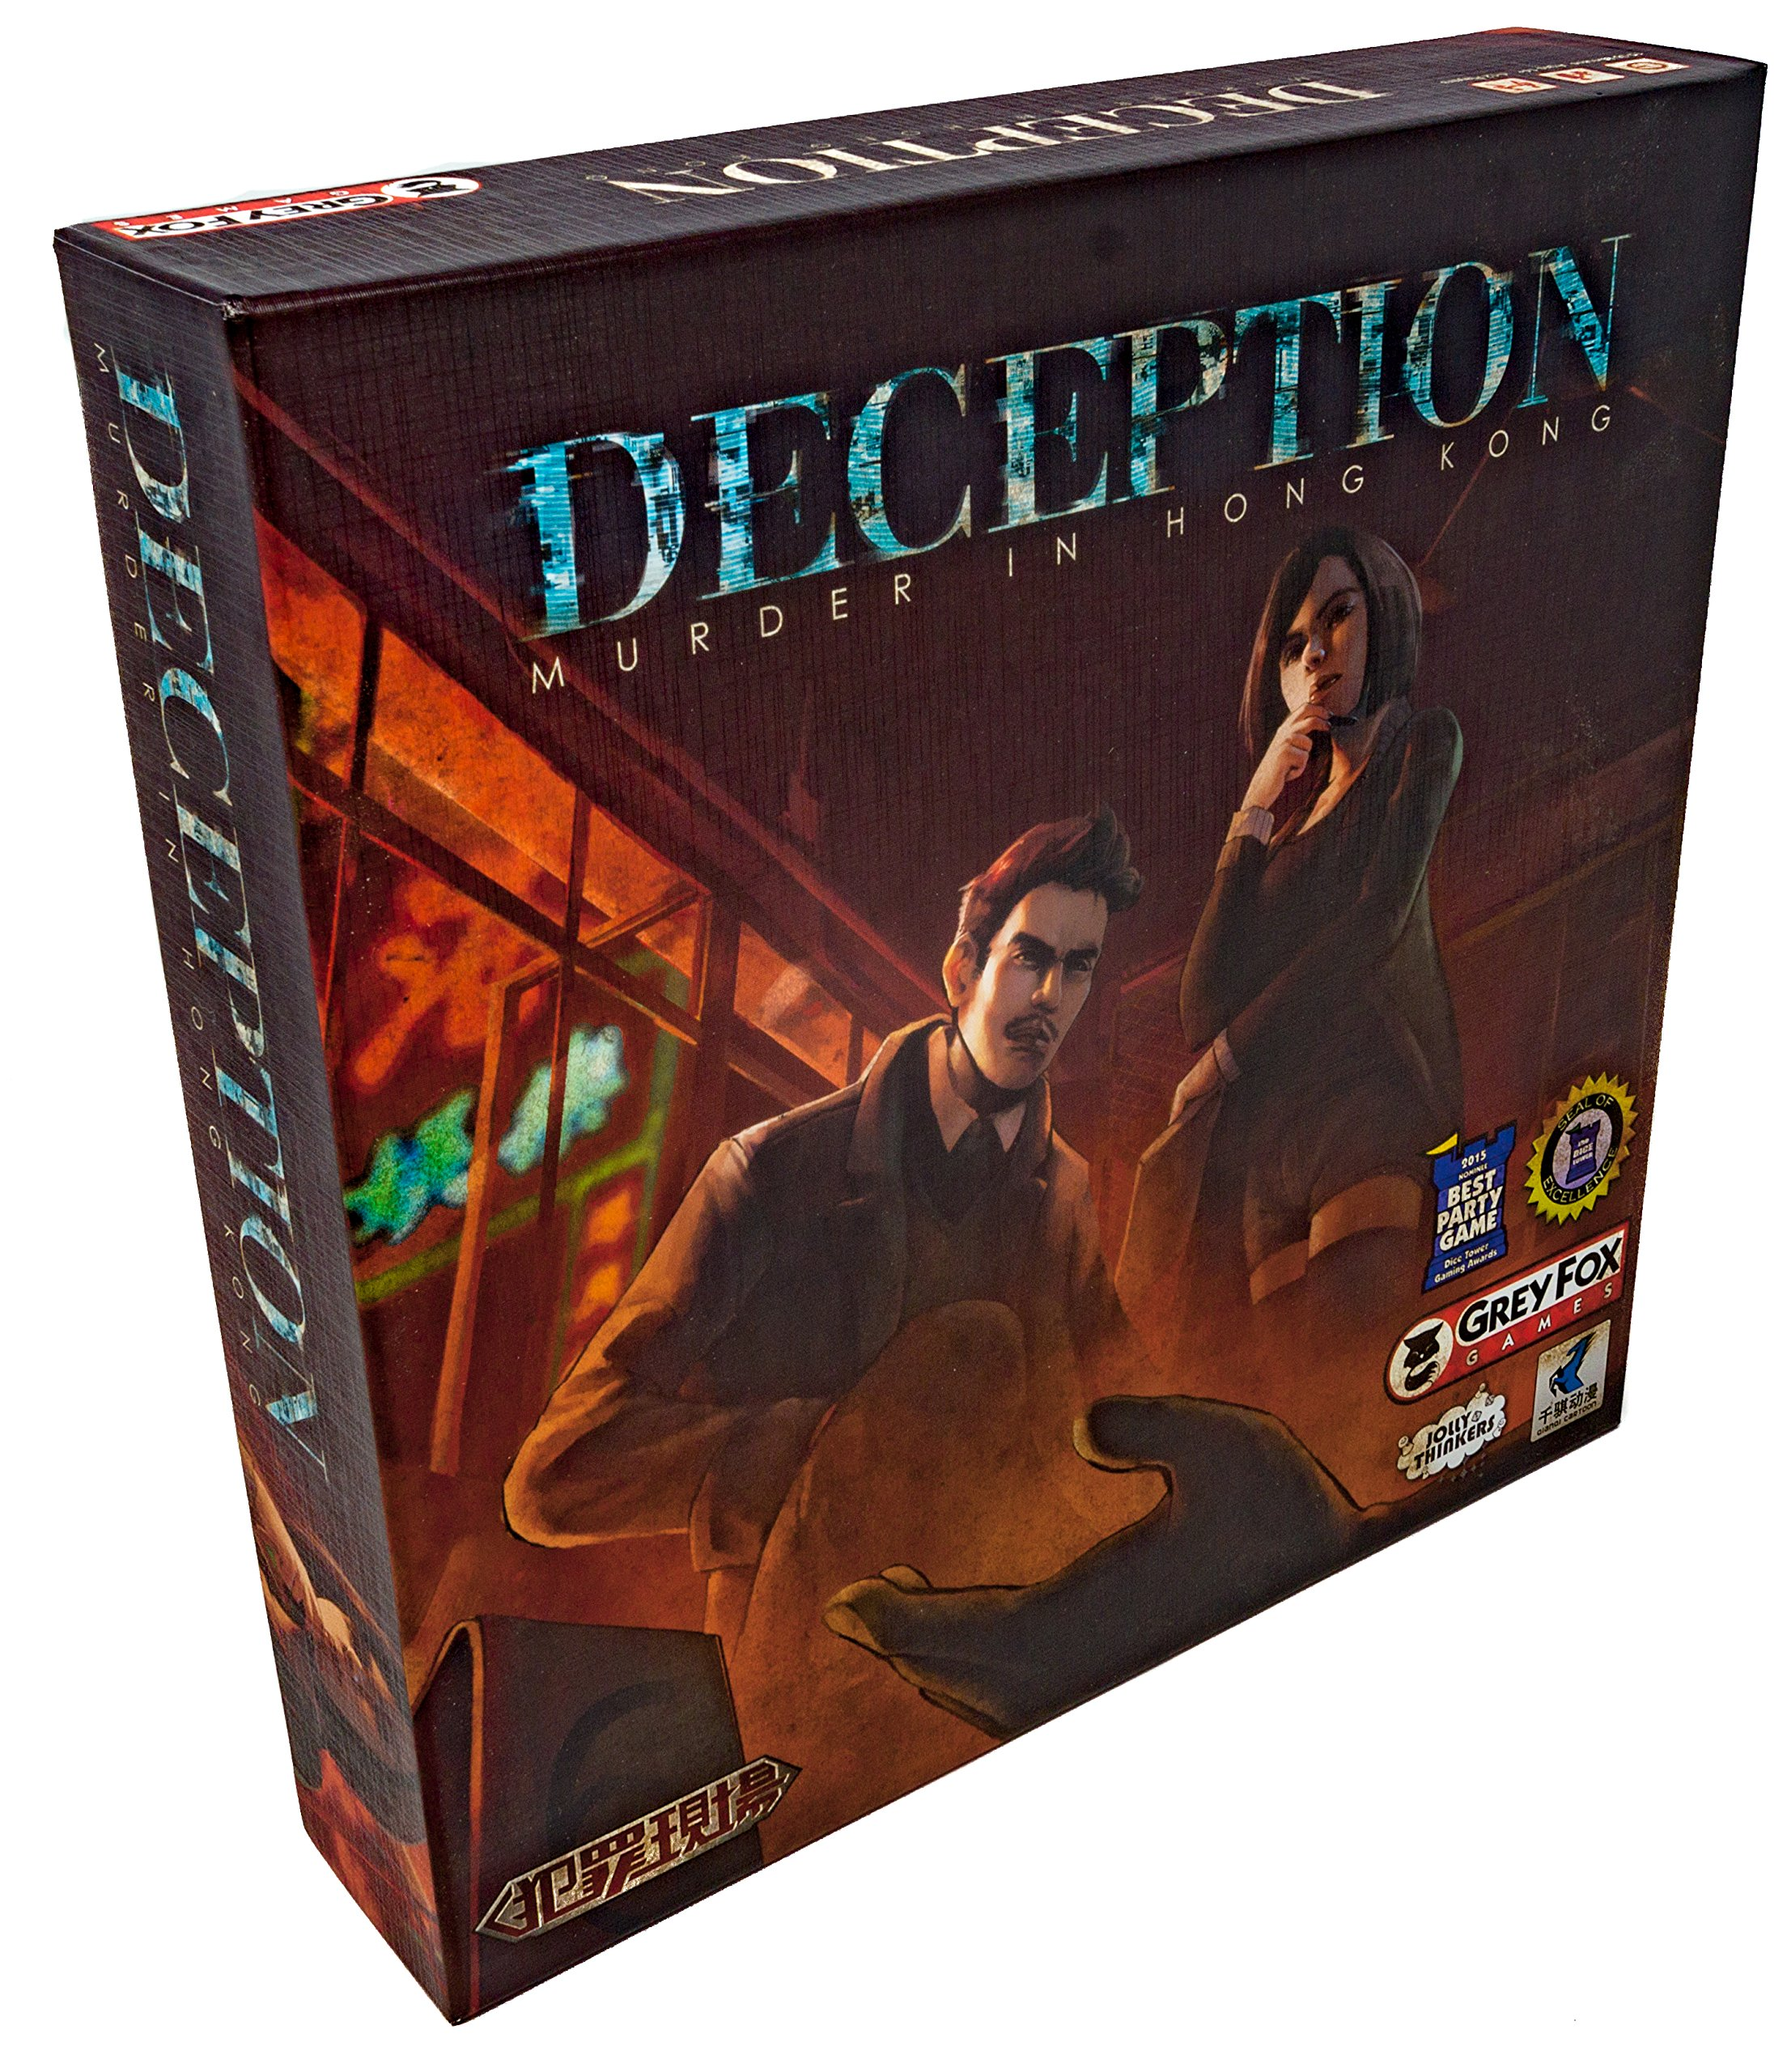 Grey Fox Games Deception: Murder in Hong Kong Board Game, Fast Pace Murder Mystery, 20 min, 4-12 Players, Age 14+ ...Who Among You Can See Through The Lies or is Capable of Not Getting Caught